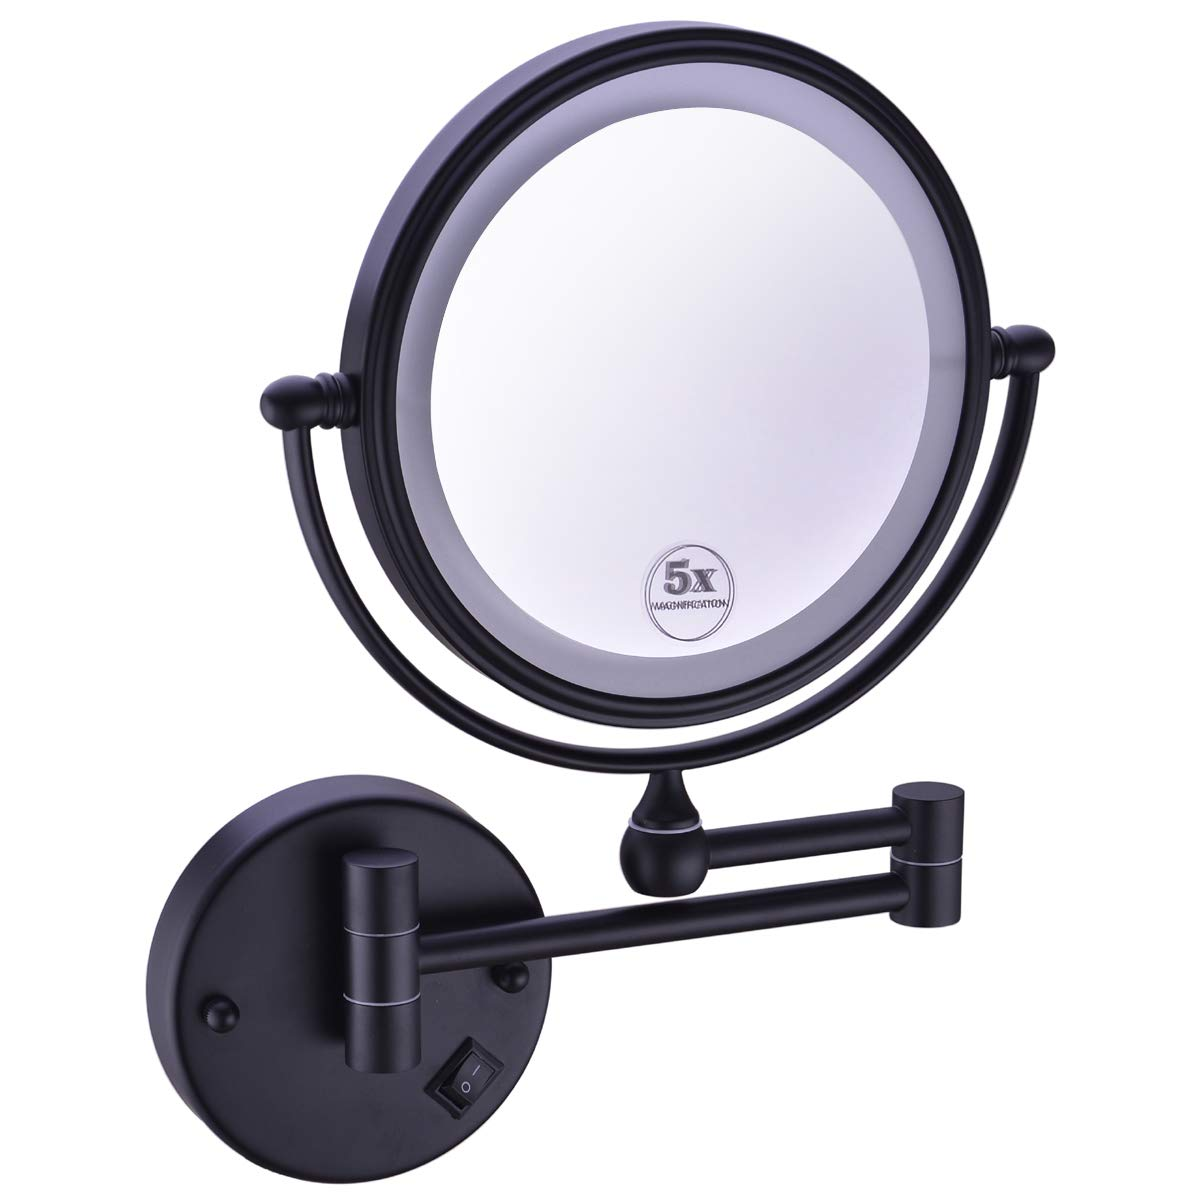 Anpean 8 Inches LED Lighted Hardwired Wall Mount Makeup Mirror with 5x Magnification, Matte Black by Anpean